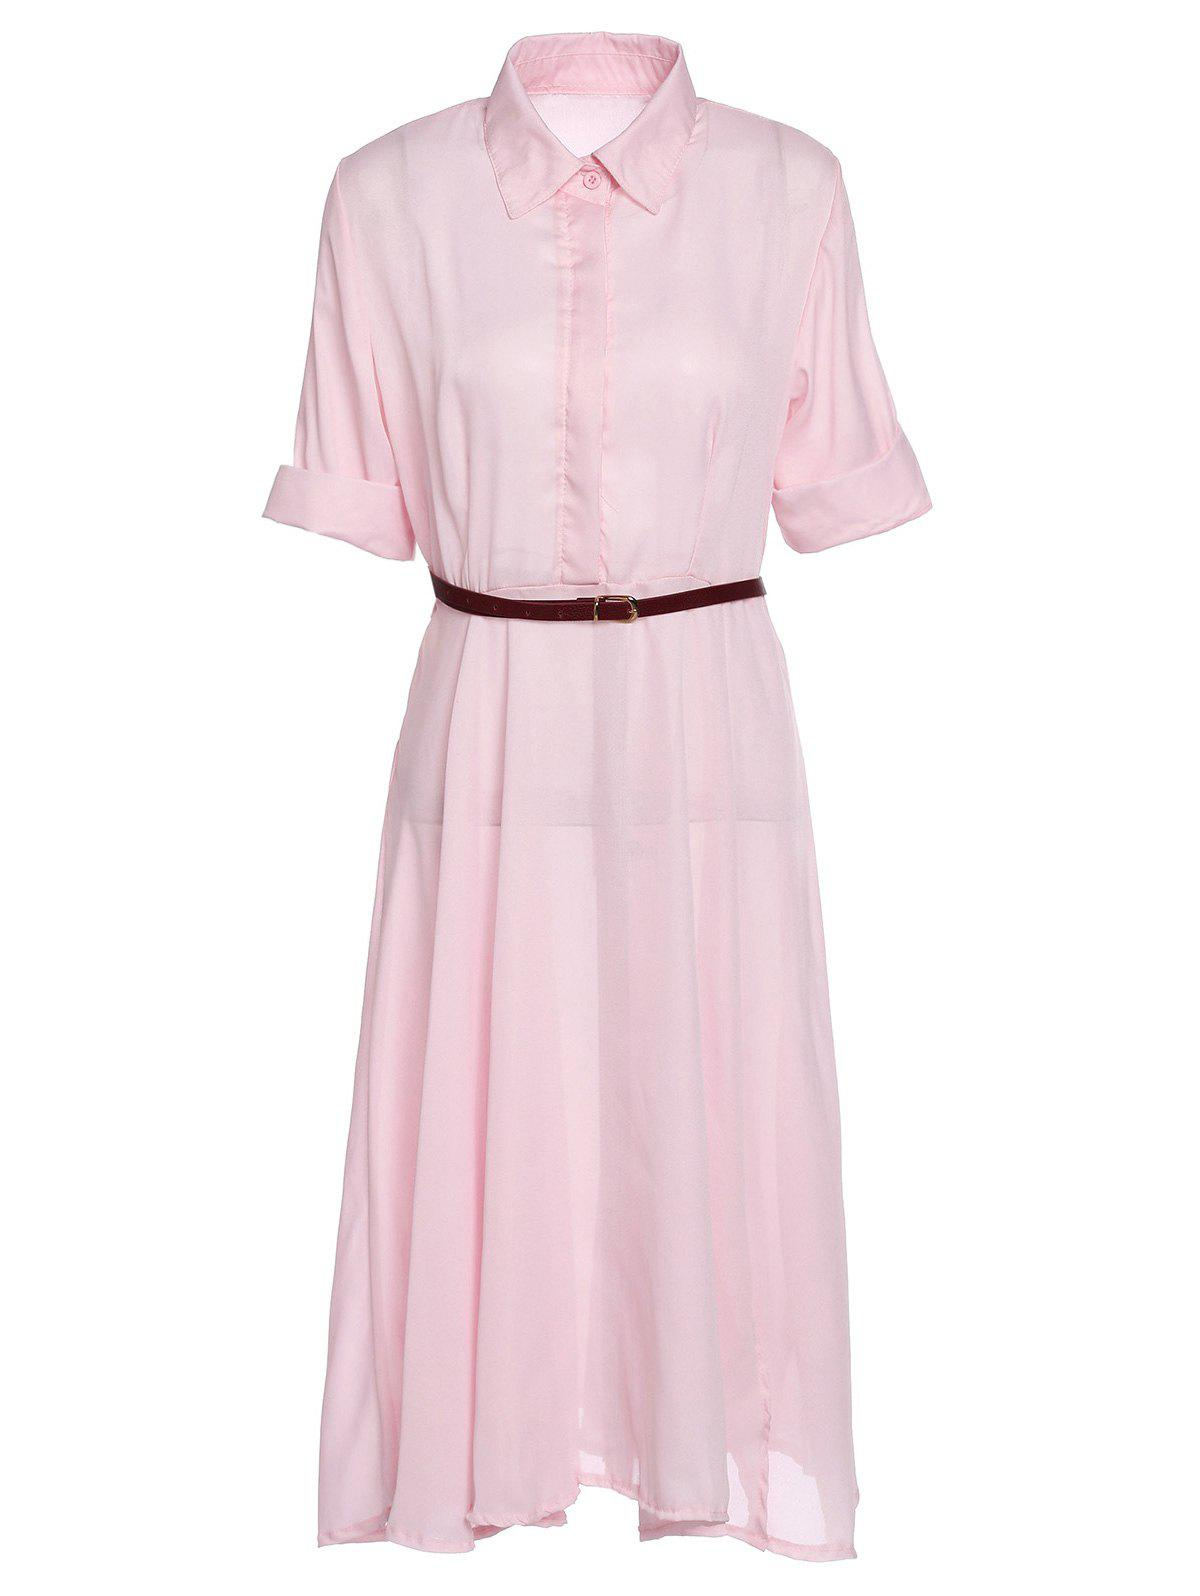 Stylish Short Sleeve Turn-Down Collar High Slit Chiffon Women's Dress - PINK XL